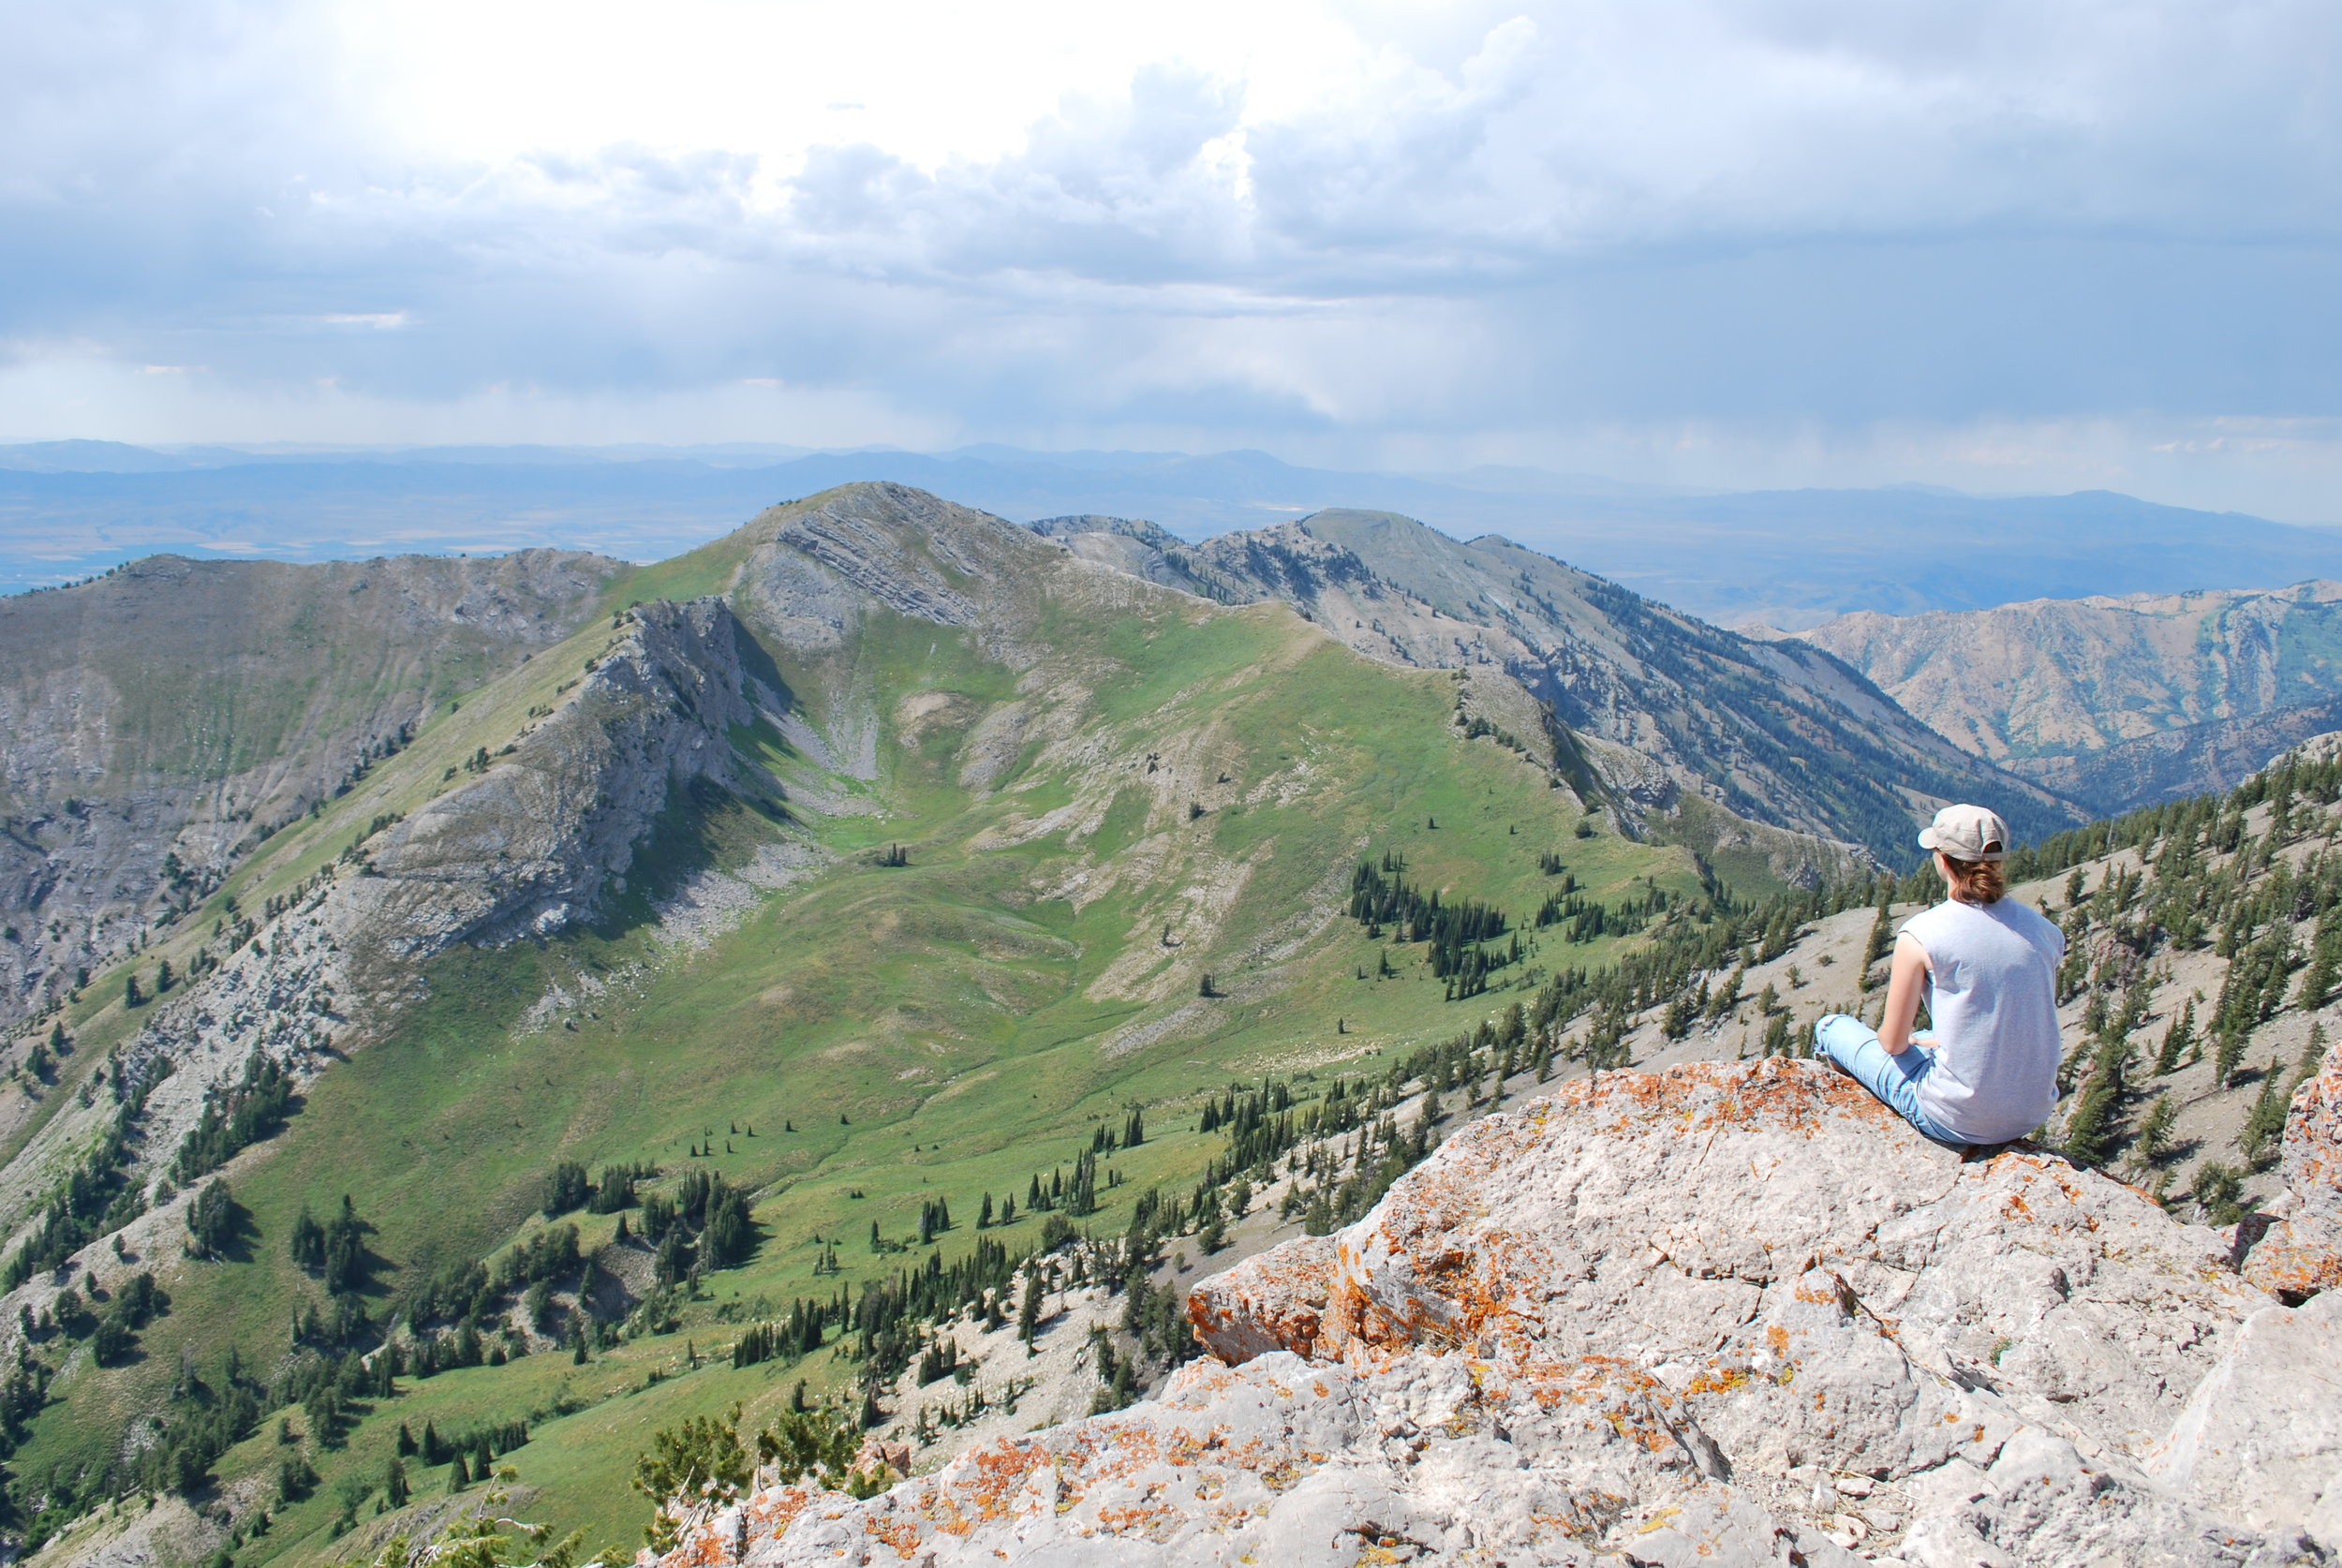 Taking in the sites, Cherry Peak in the background